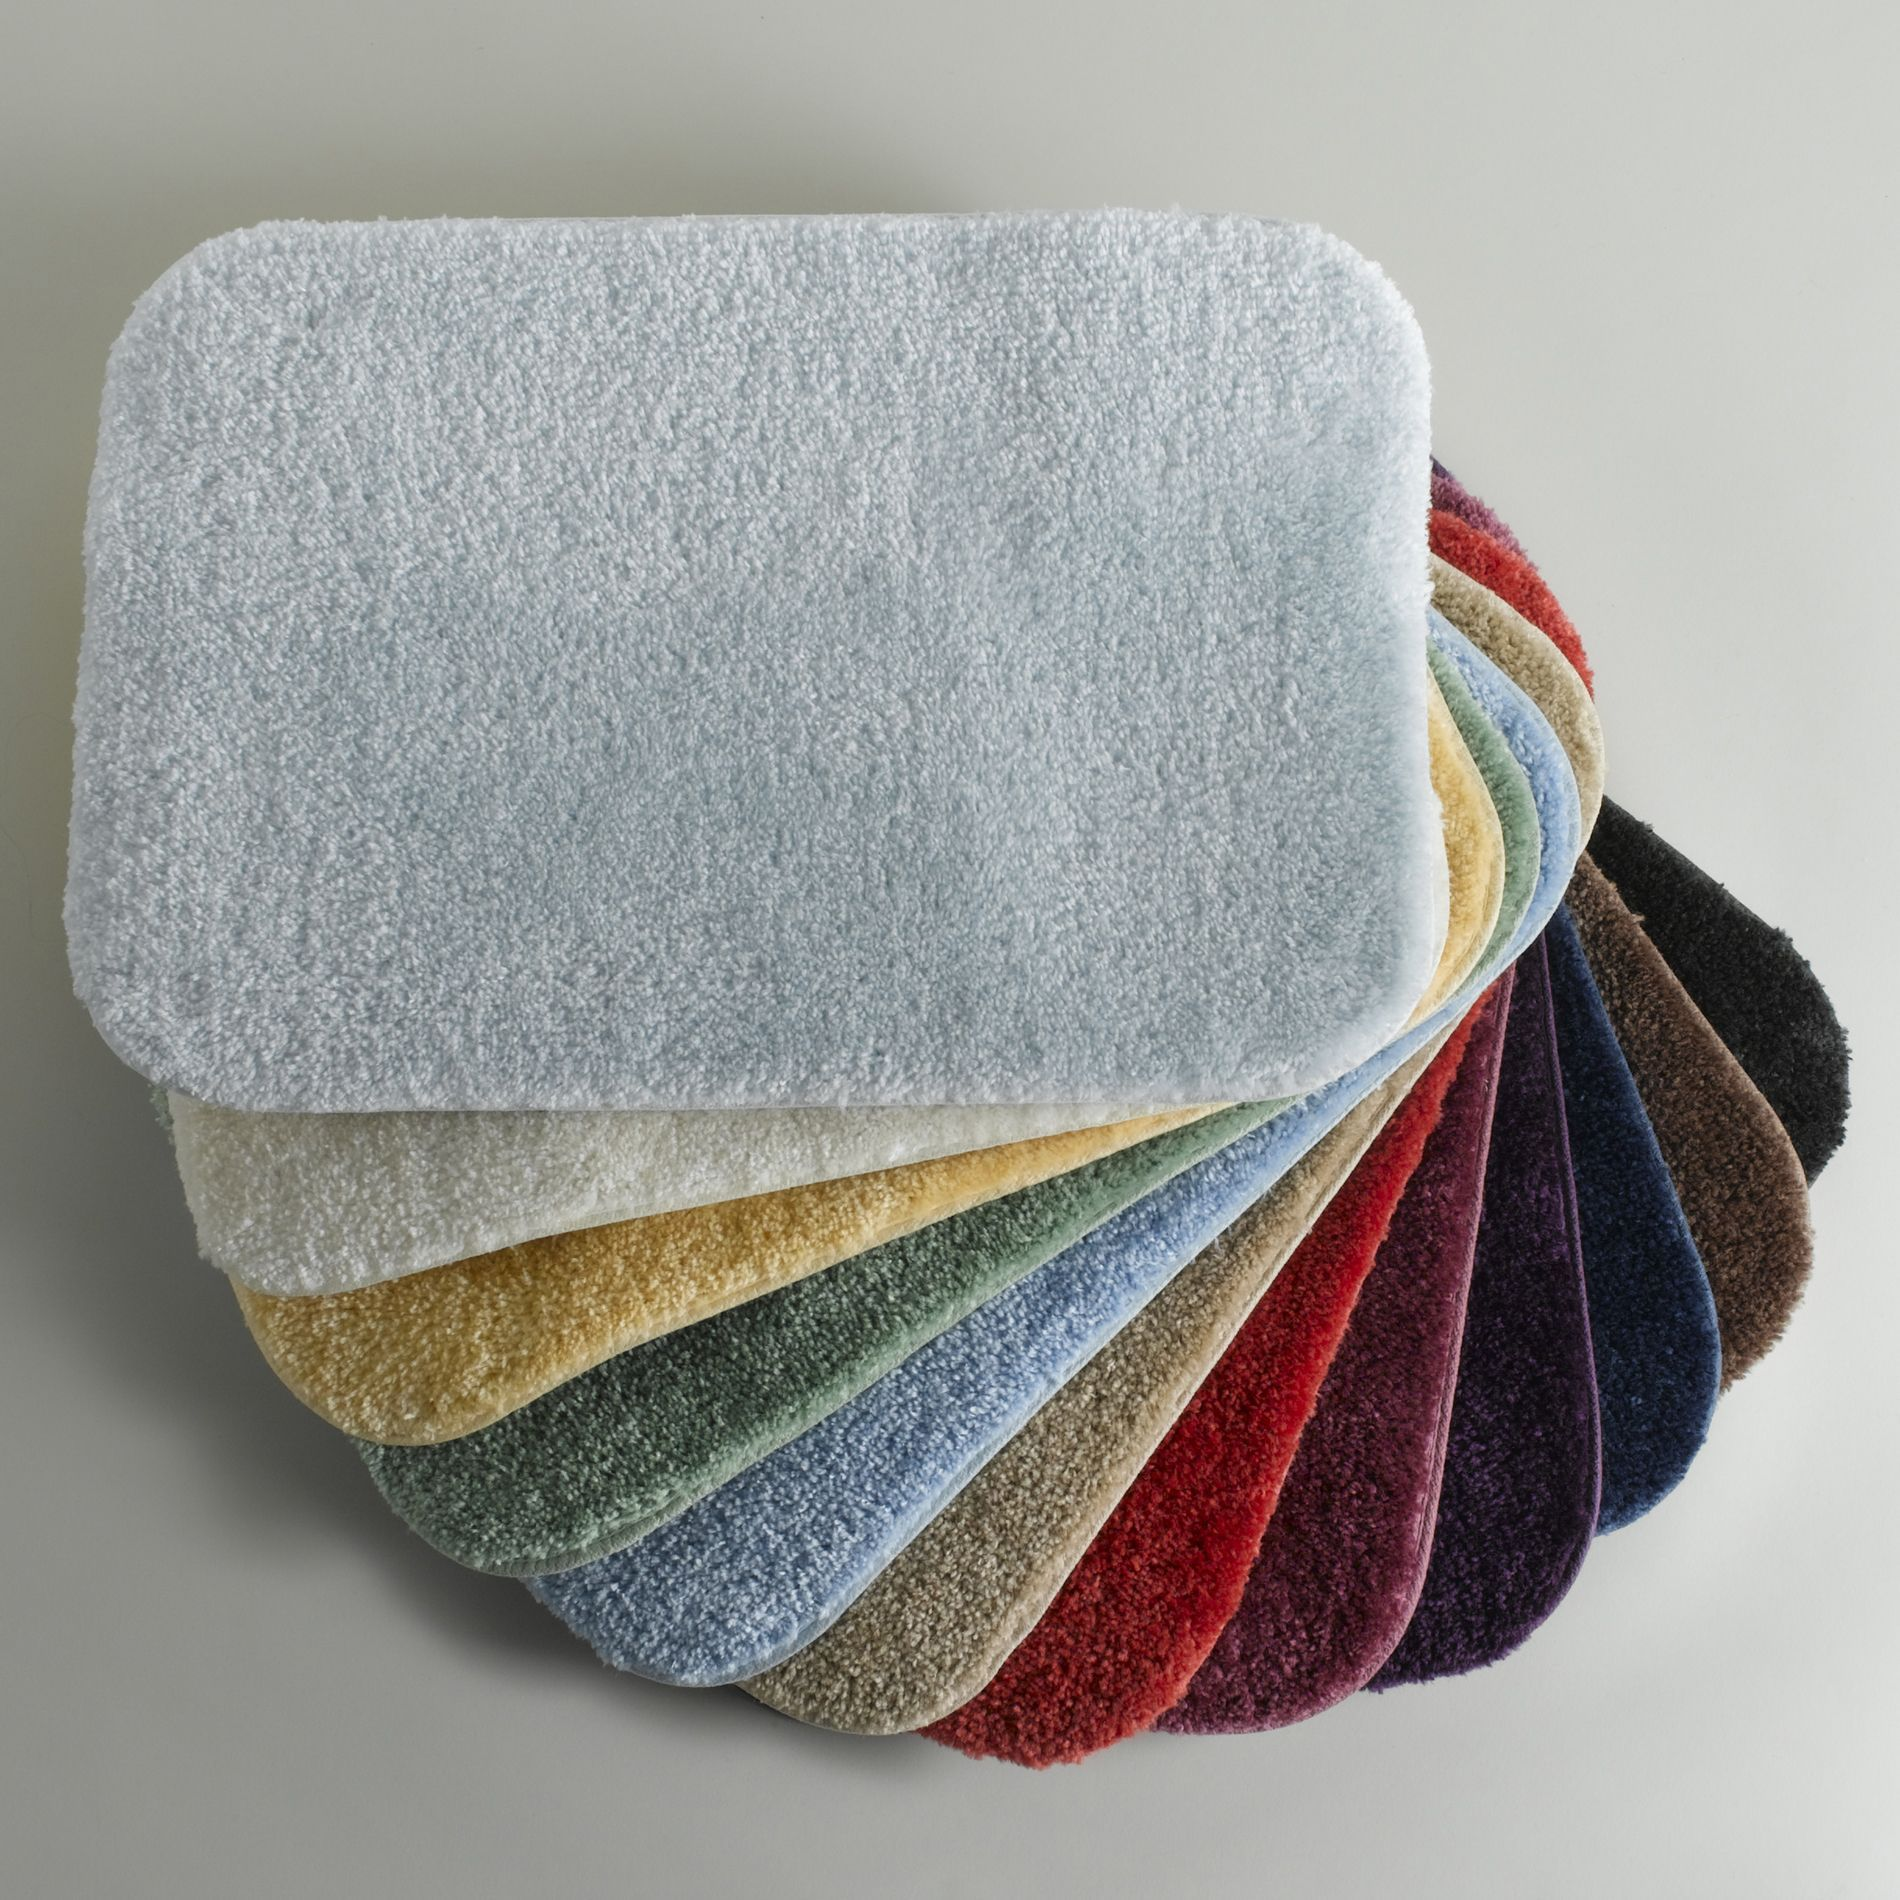 Bath Rugs With Rubber Backing Small To Medium Wish List - Round bath mat for bathroom decorating ideas